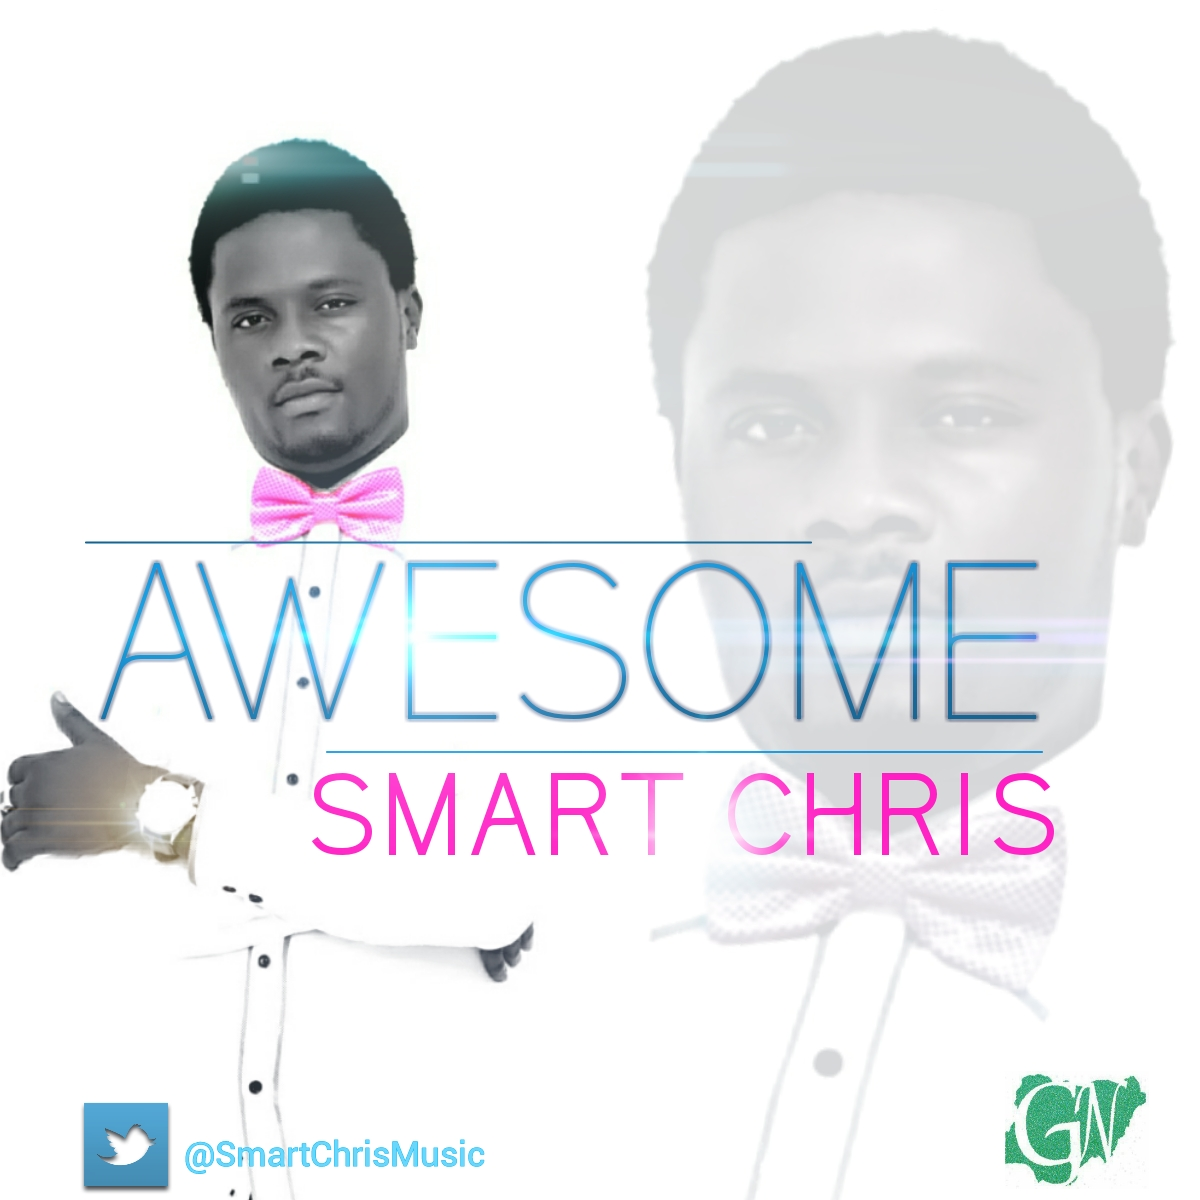 AWESOME GOD - Smart Chris [@SmartChrisMusic]